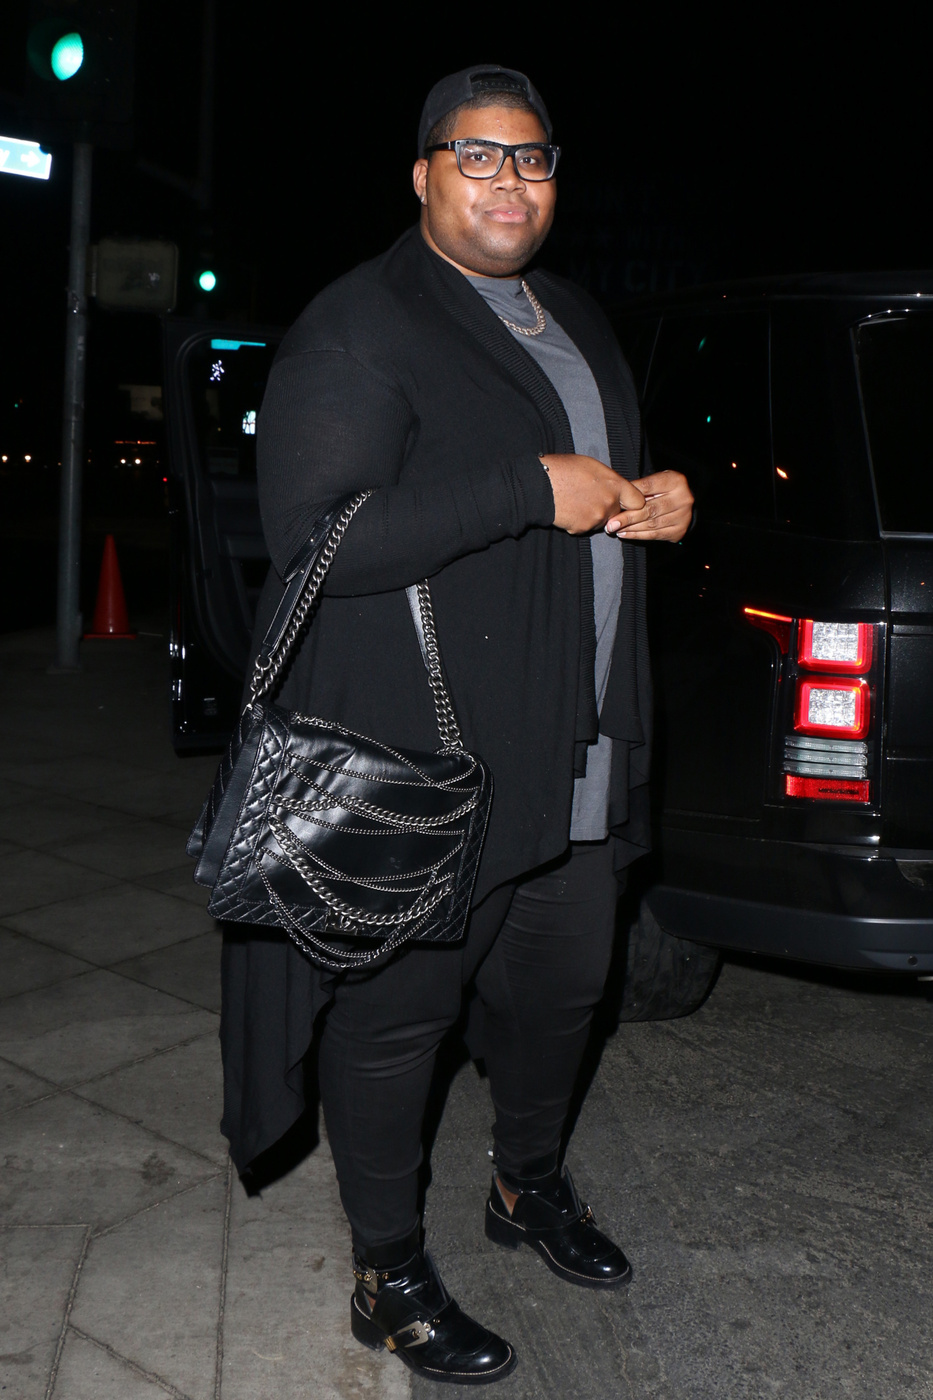 Earvin Johnson III, known as E.J seen leaving the Pink Taco in Los Angeles